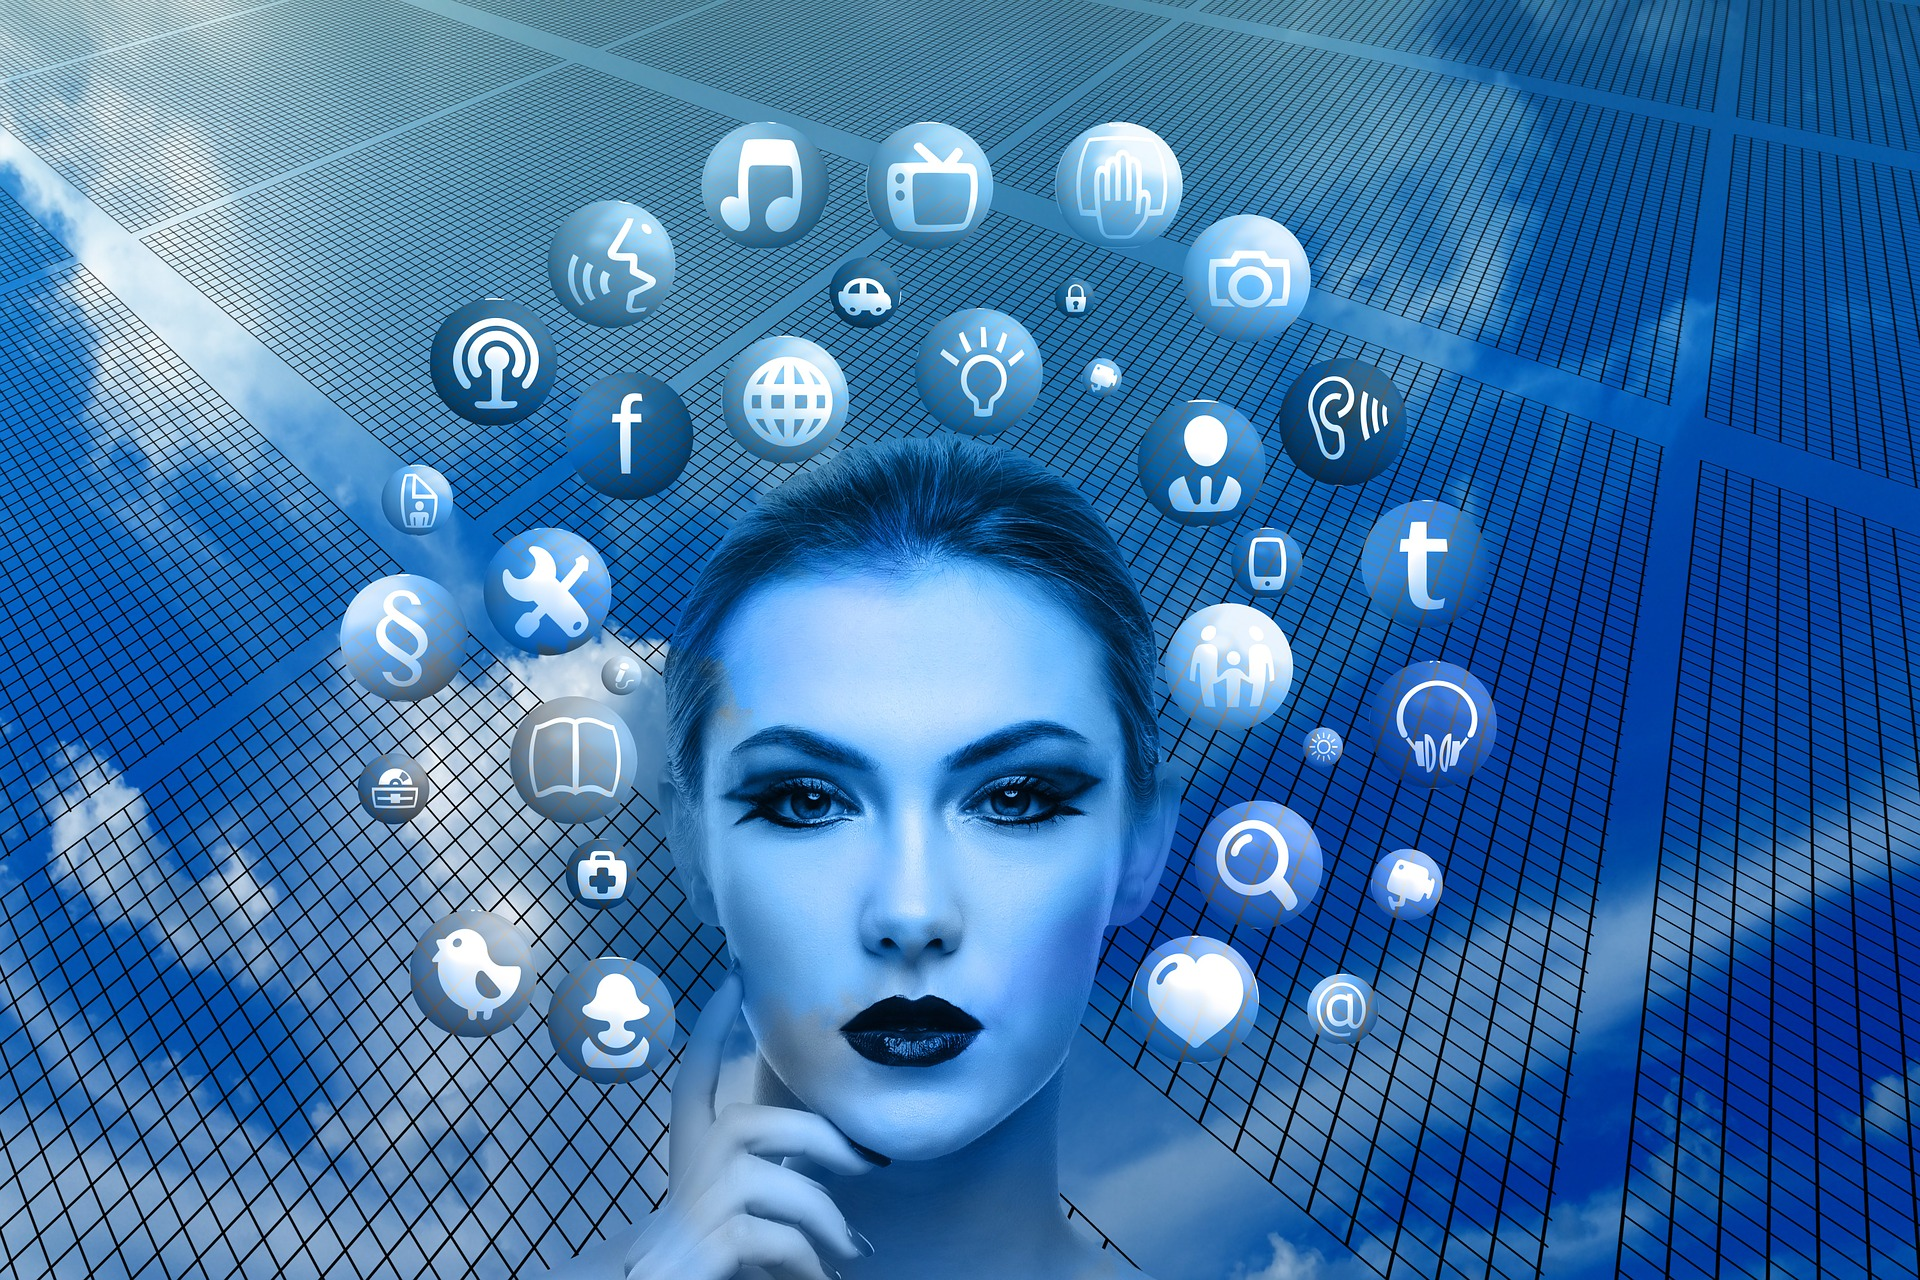 A blue image showing a women with social media icons resembling social listening for hotel marketing in 2019